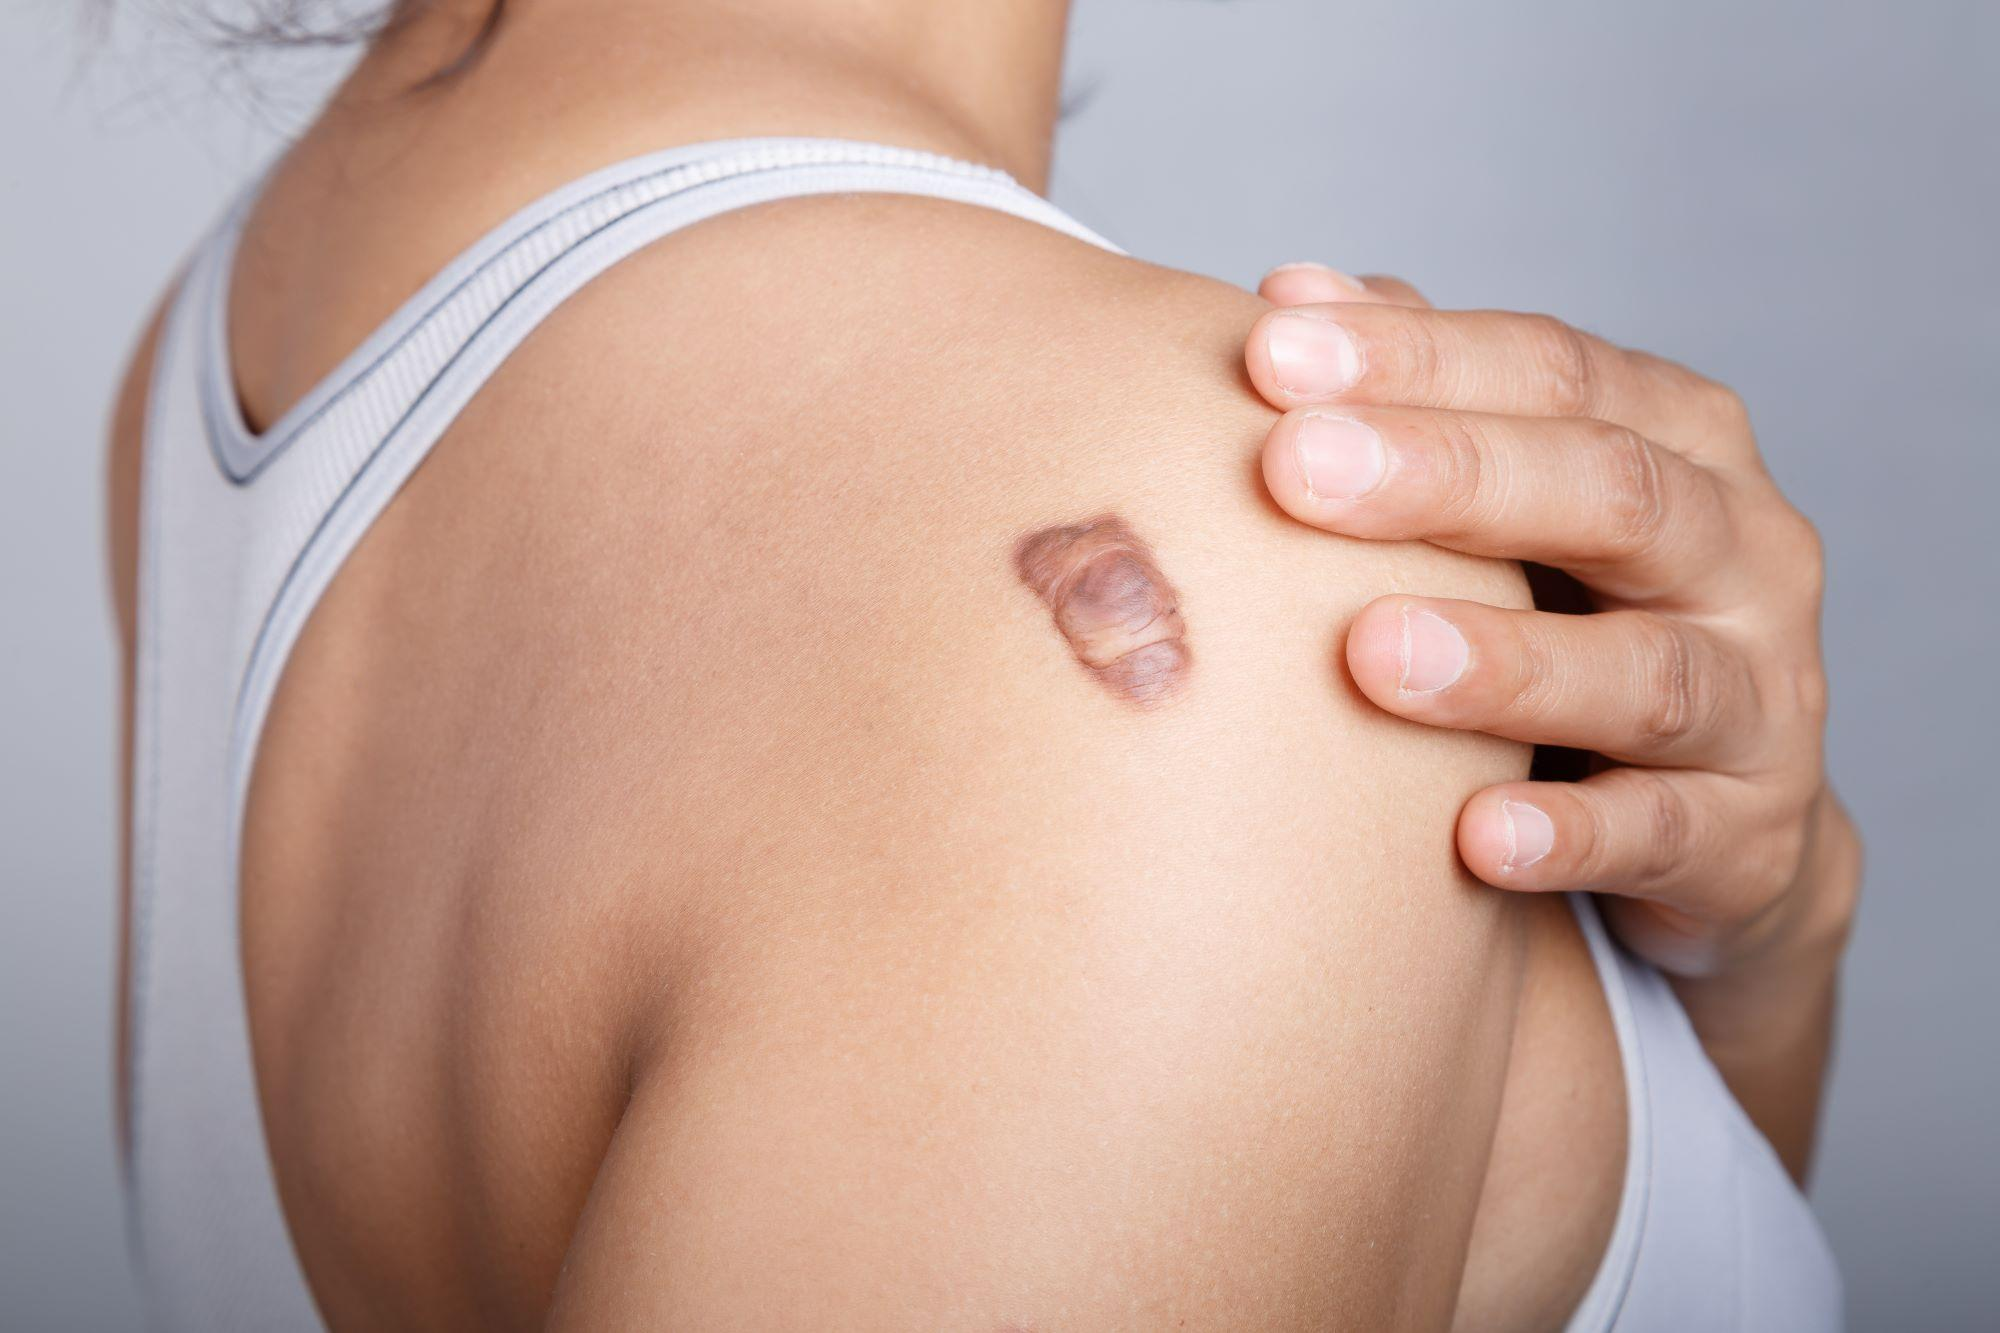 Keloid Scars: What are the Best Methods of Treatment?